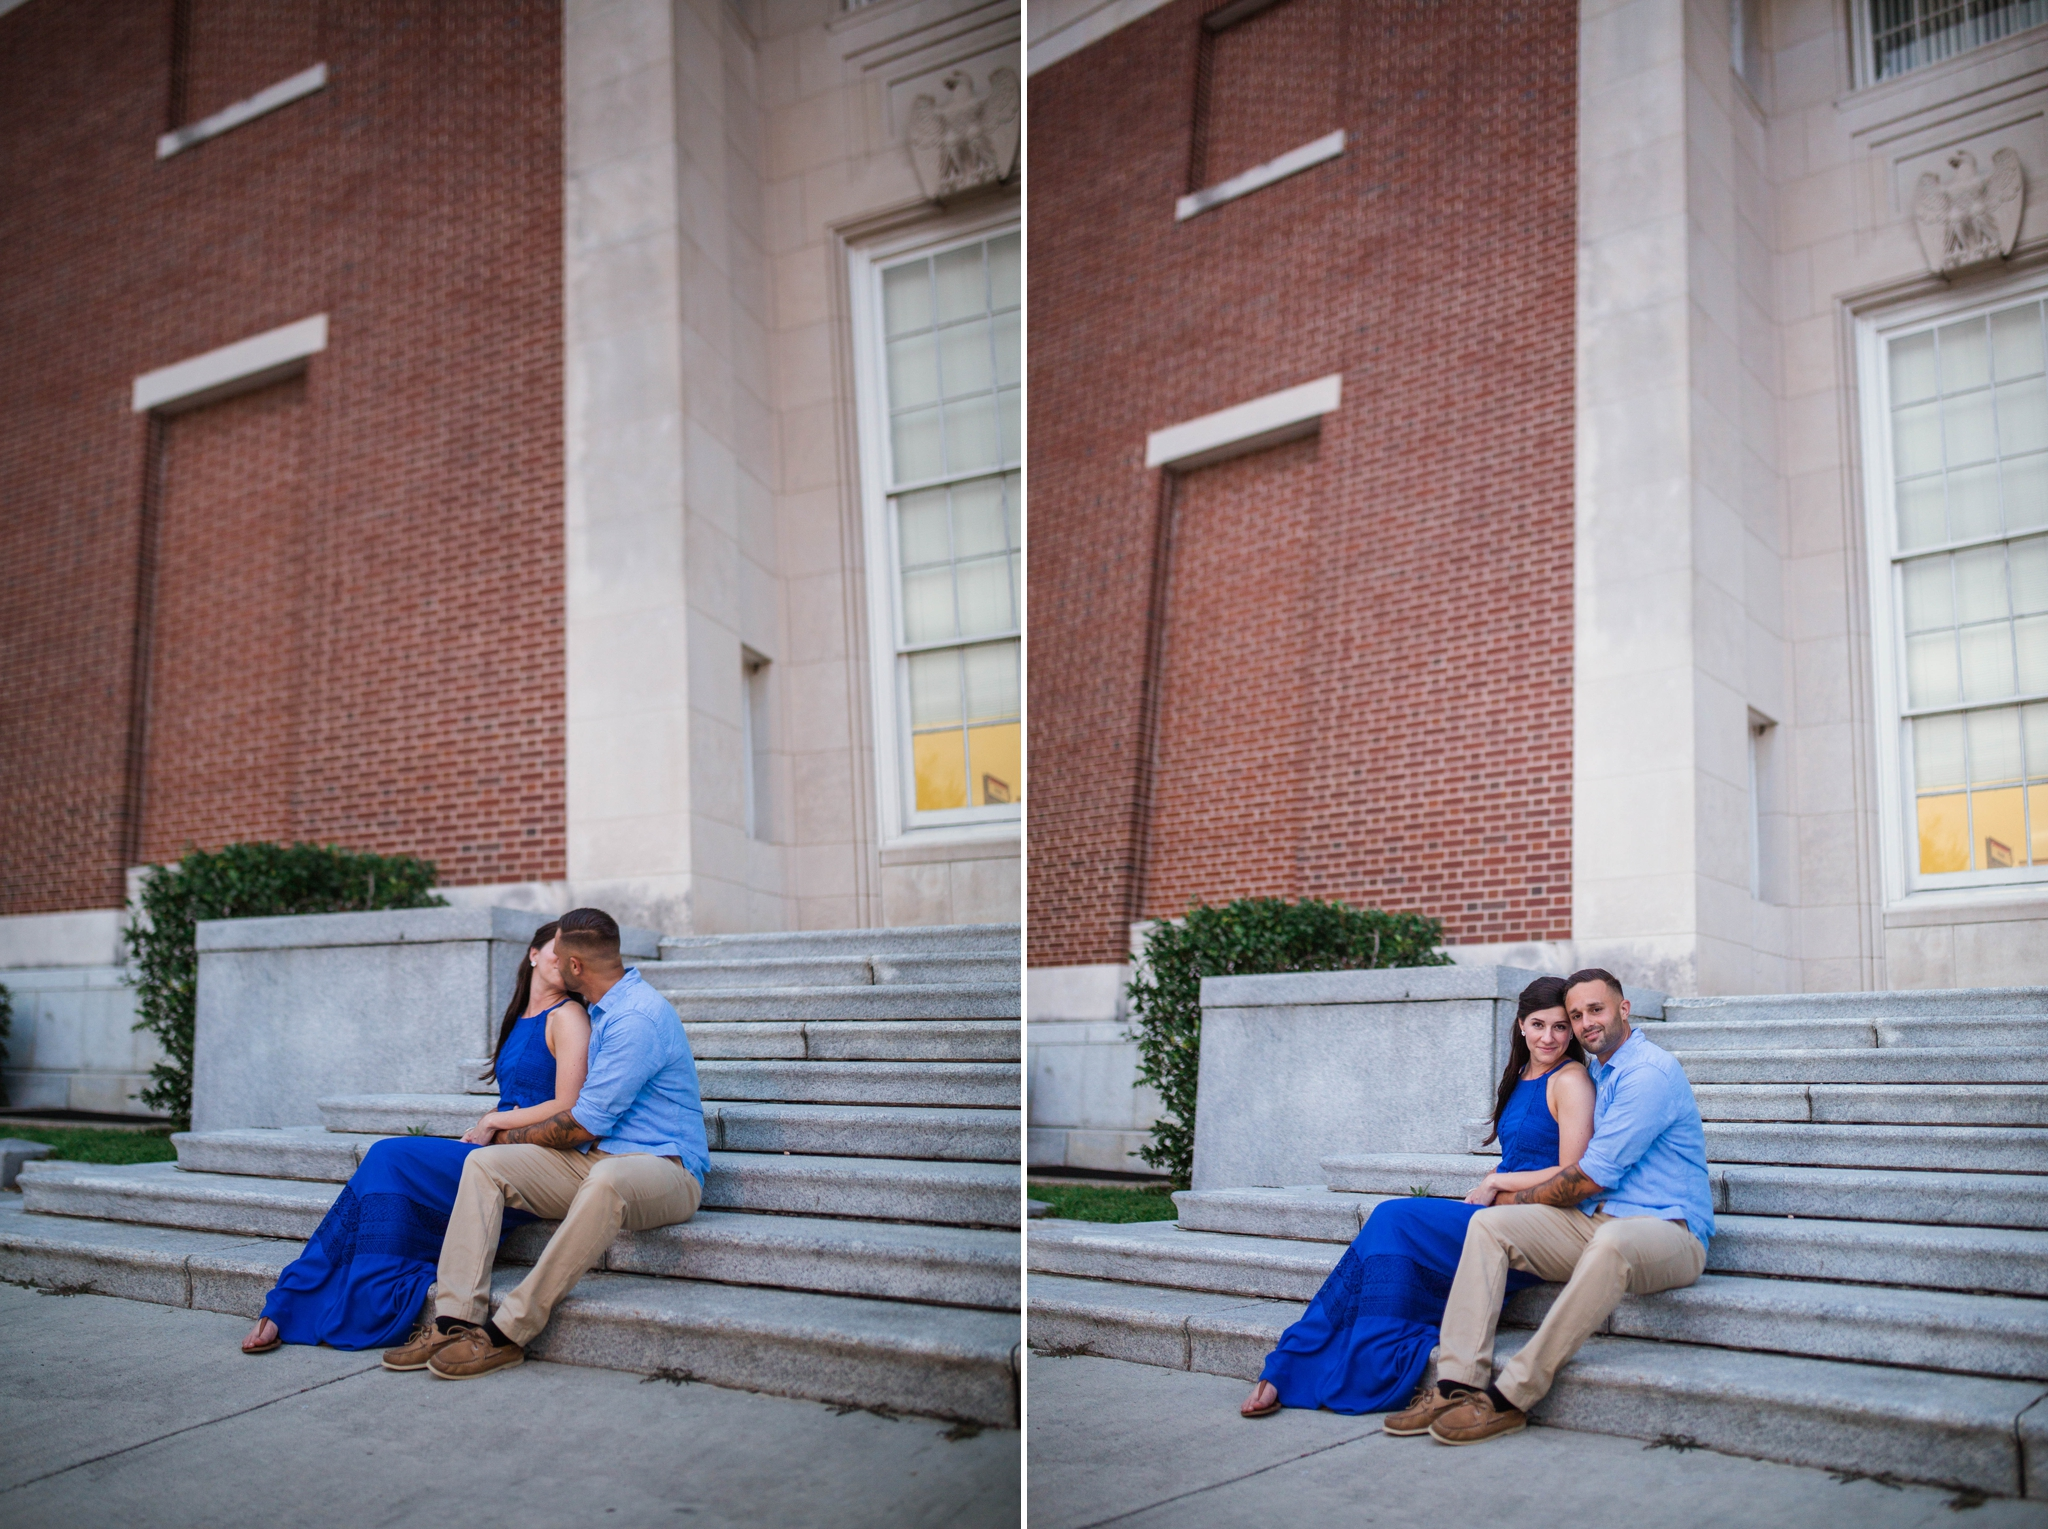 Engagement Photography Session in Downtown Wilmington, North Carolina - Wedding Photographer in NC  8.jpg